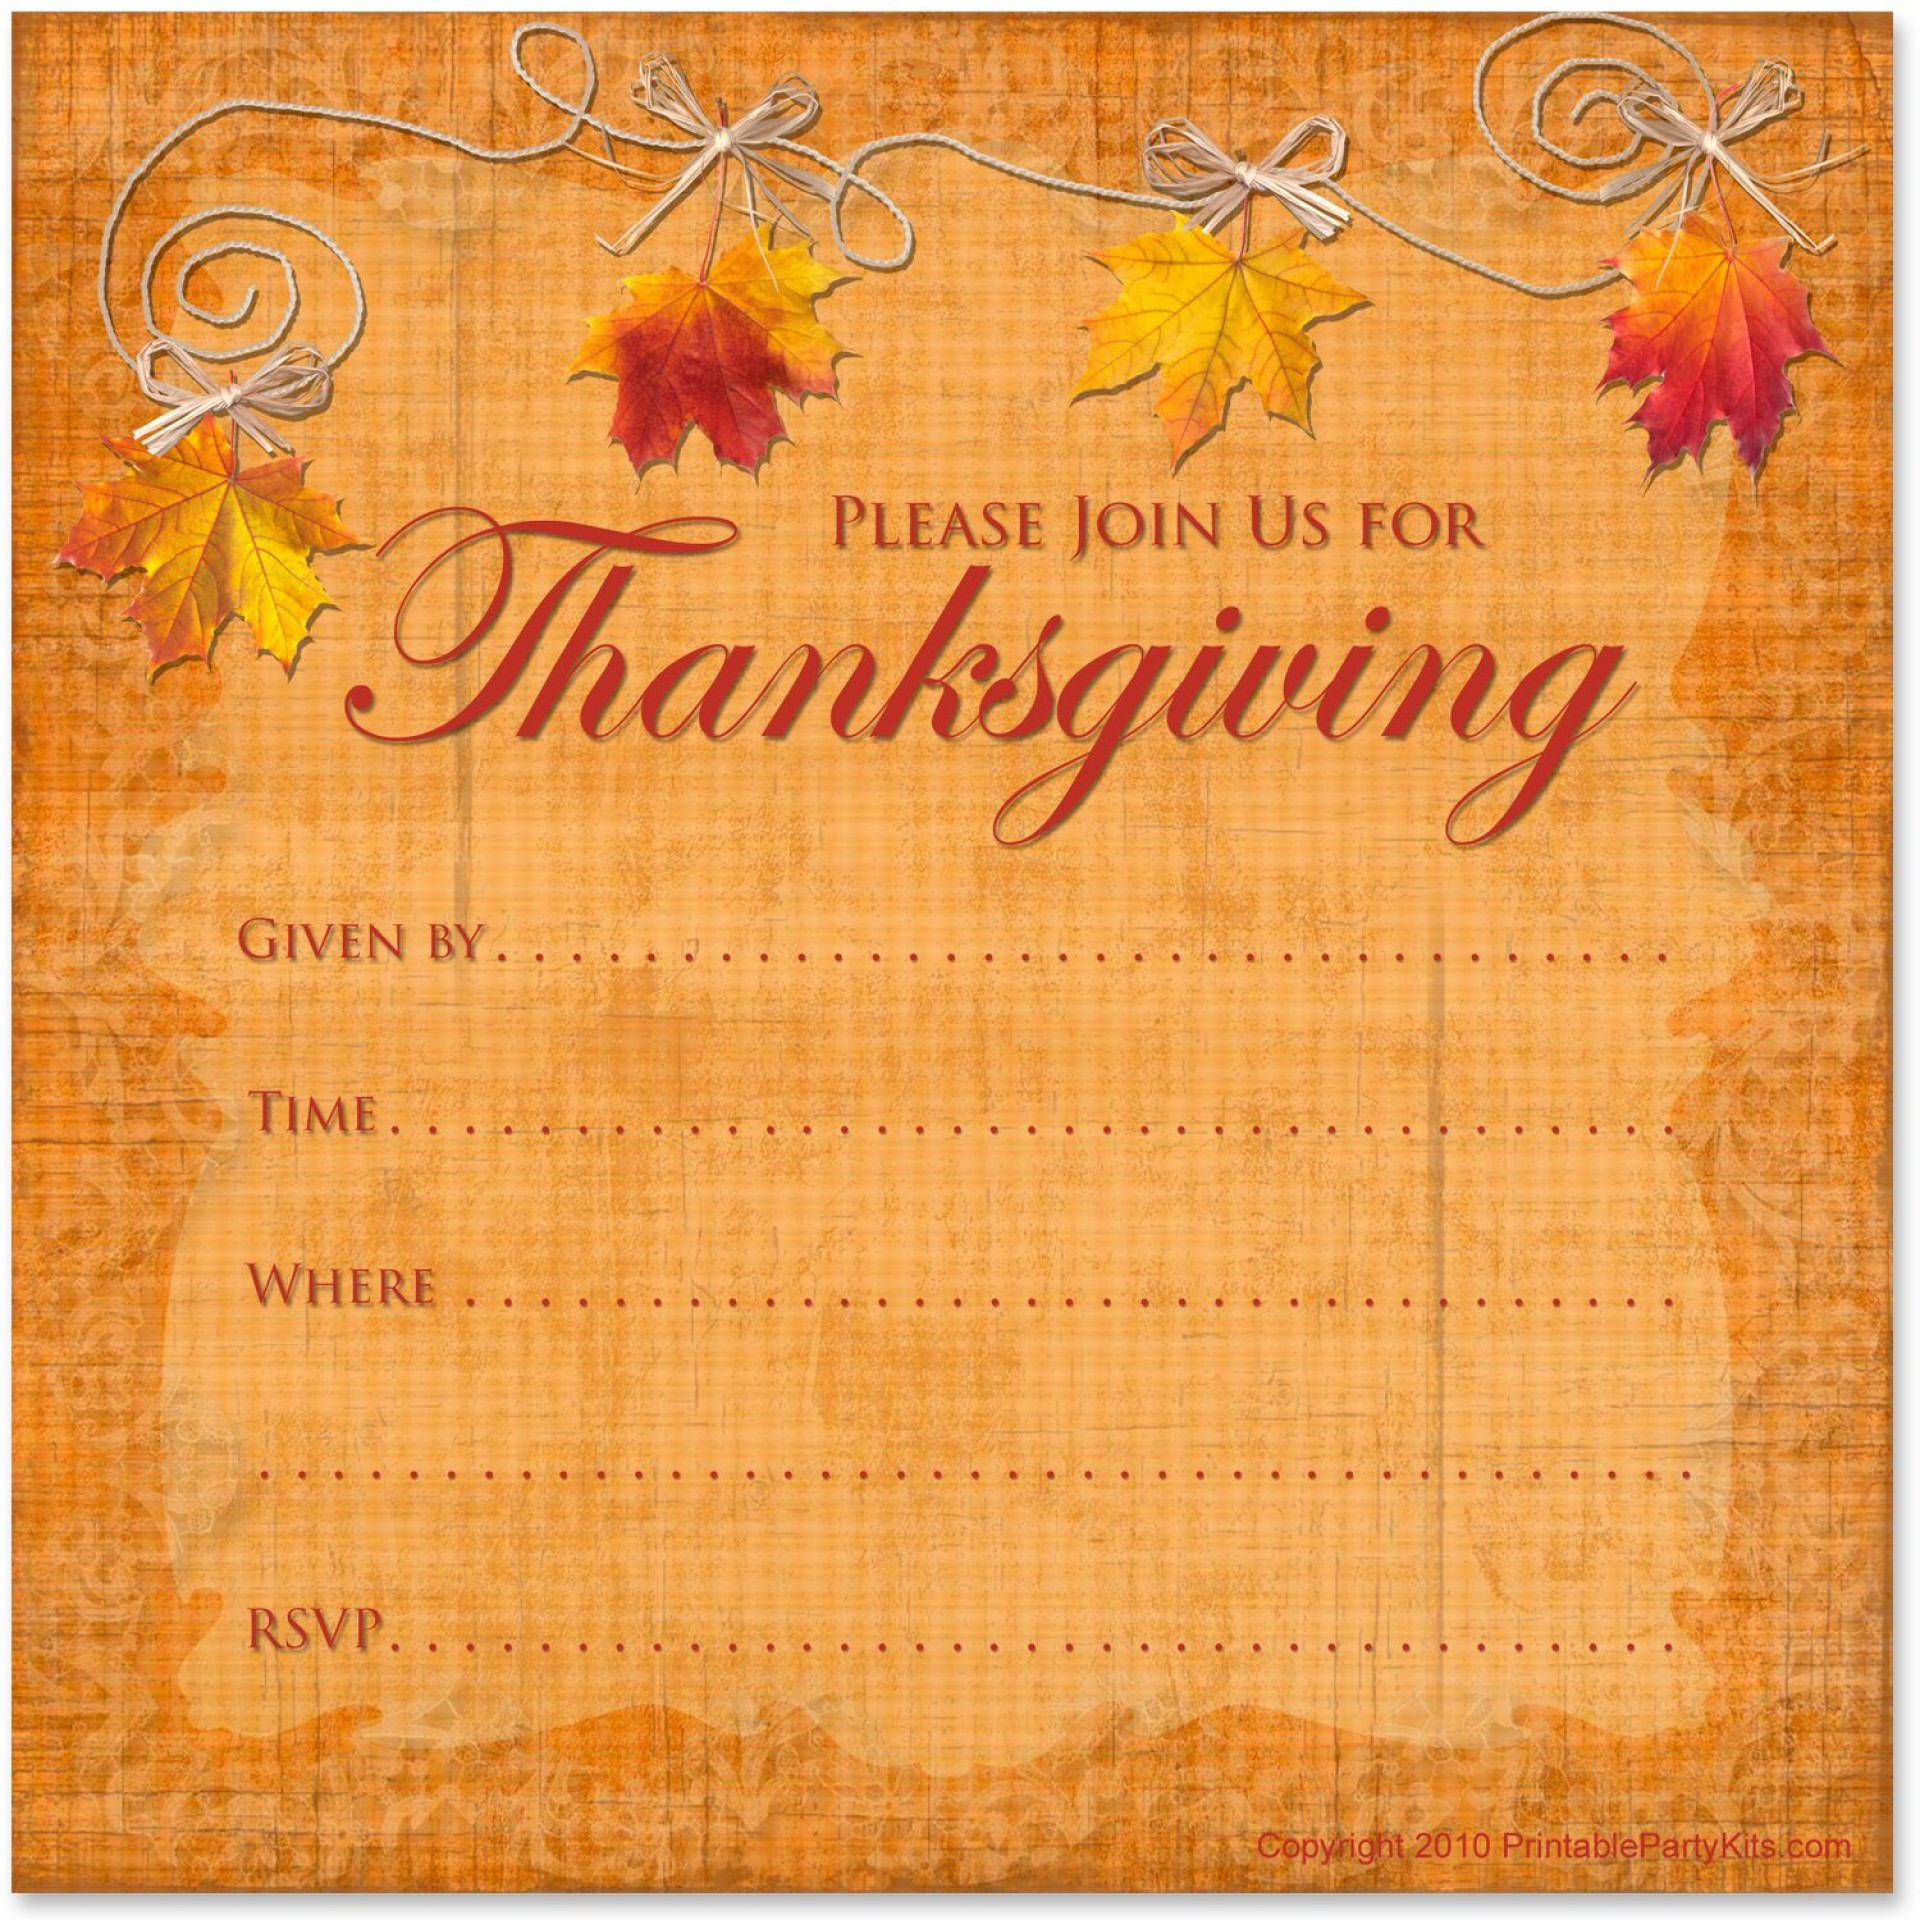 008 Formidable Free Thanksgiving Invitation Template Picture  Templates Printable Dinner Download Potluck1920